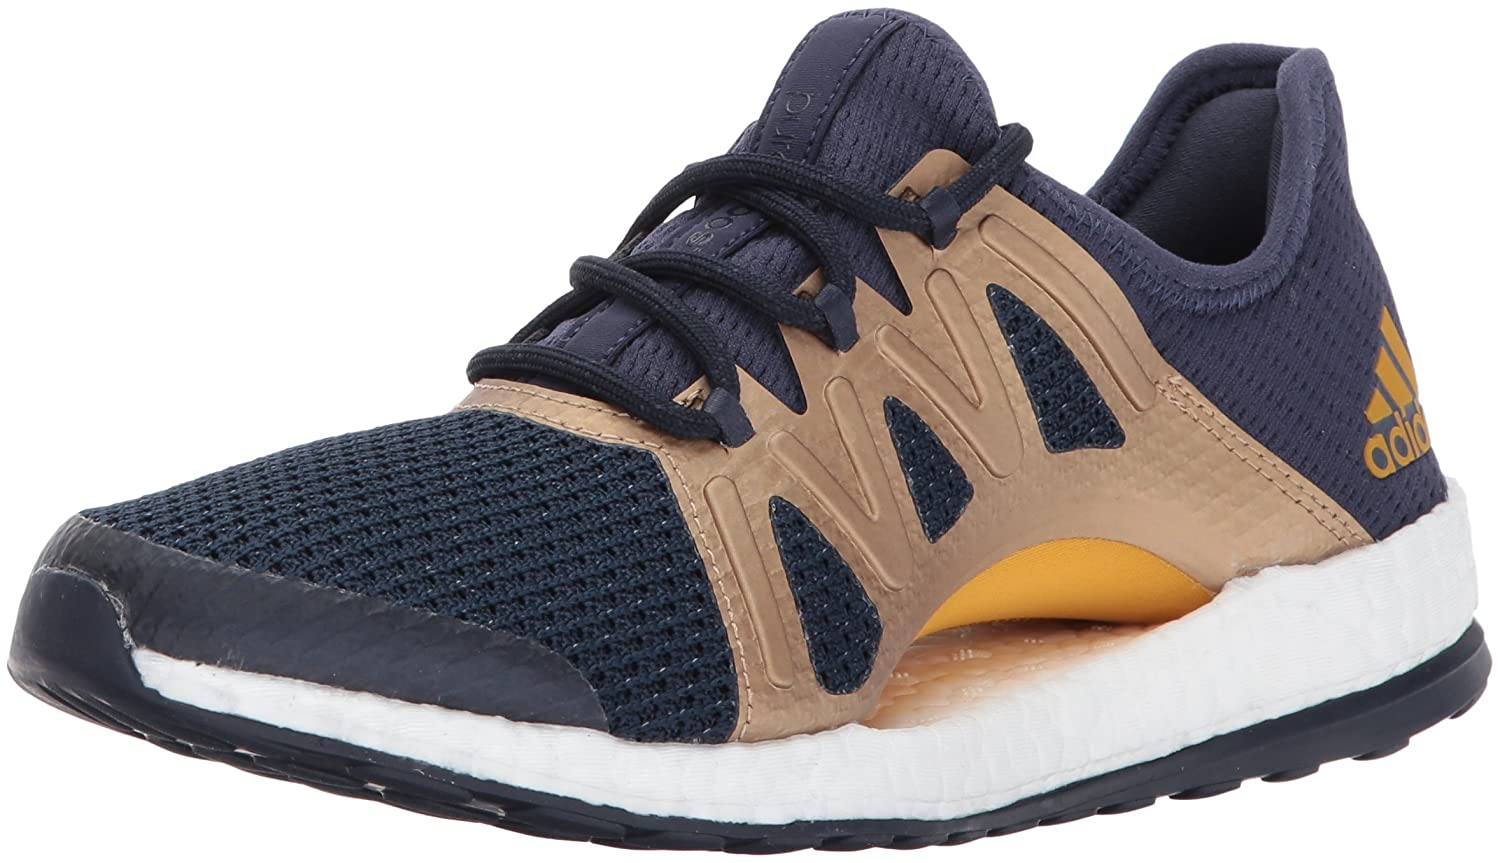 adidas Women's Pureboost Xpose B01MQNG491 5.5 B(M) US|Trace Blue/Tactile Gold /Legend Ink